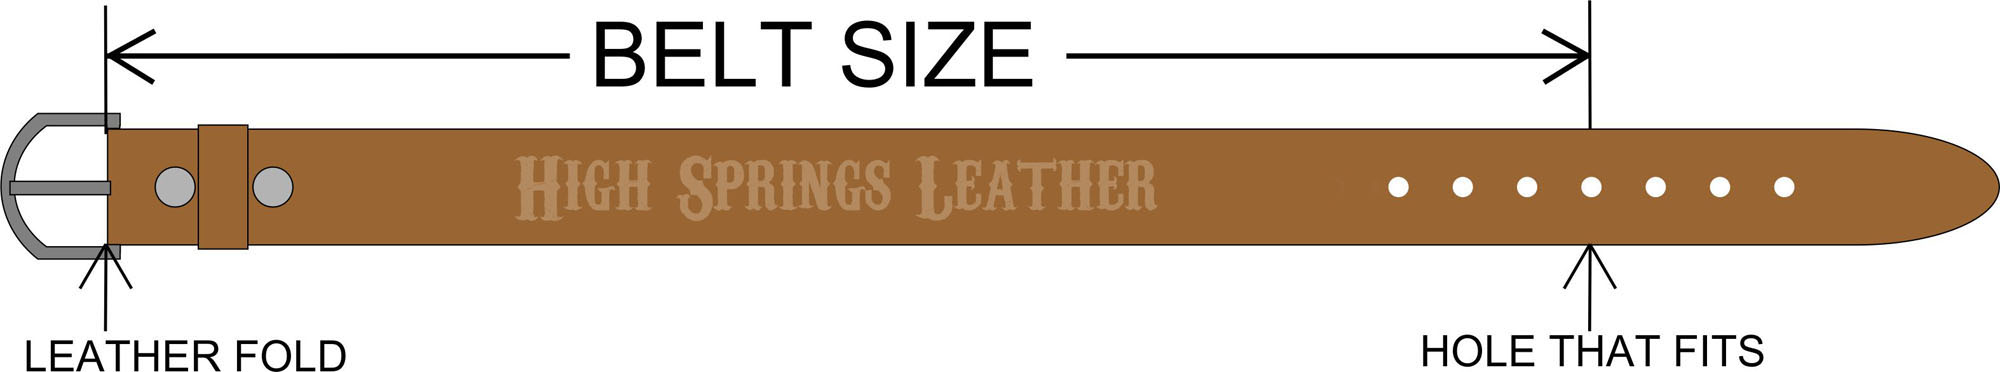 how to determine your belt size high springs leather